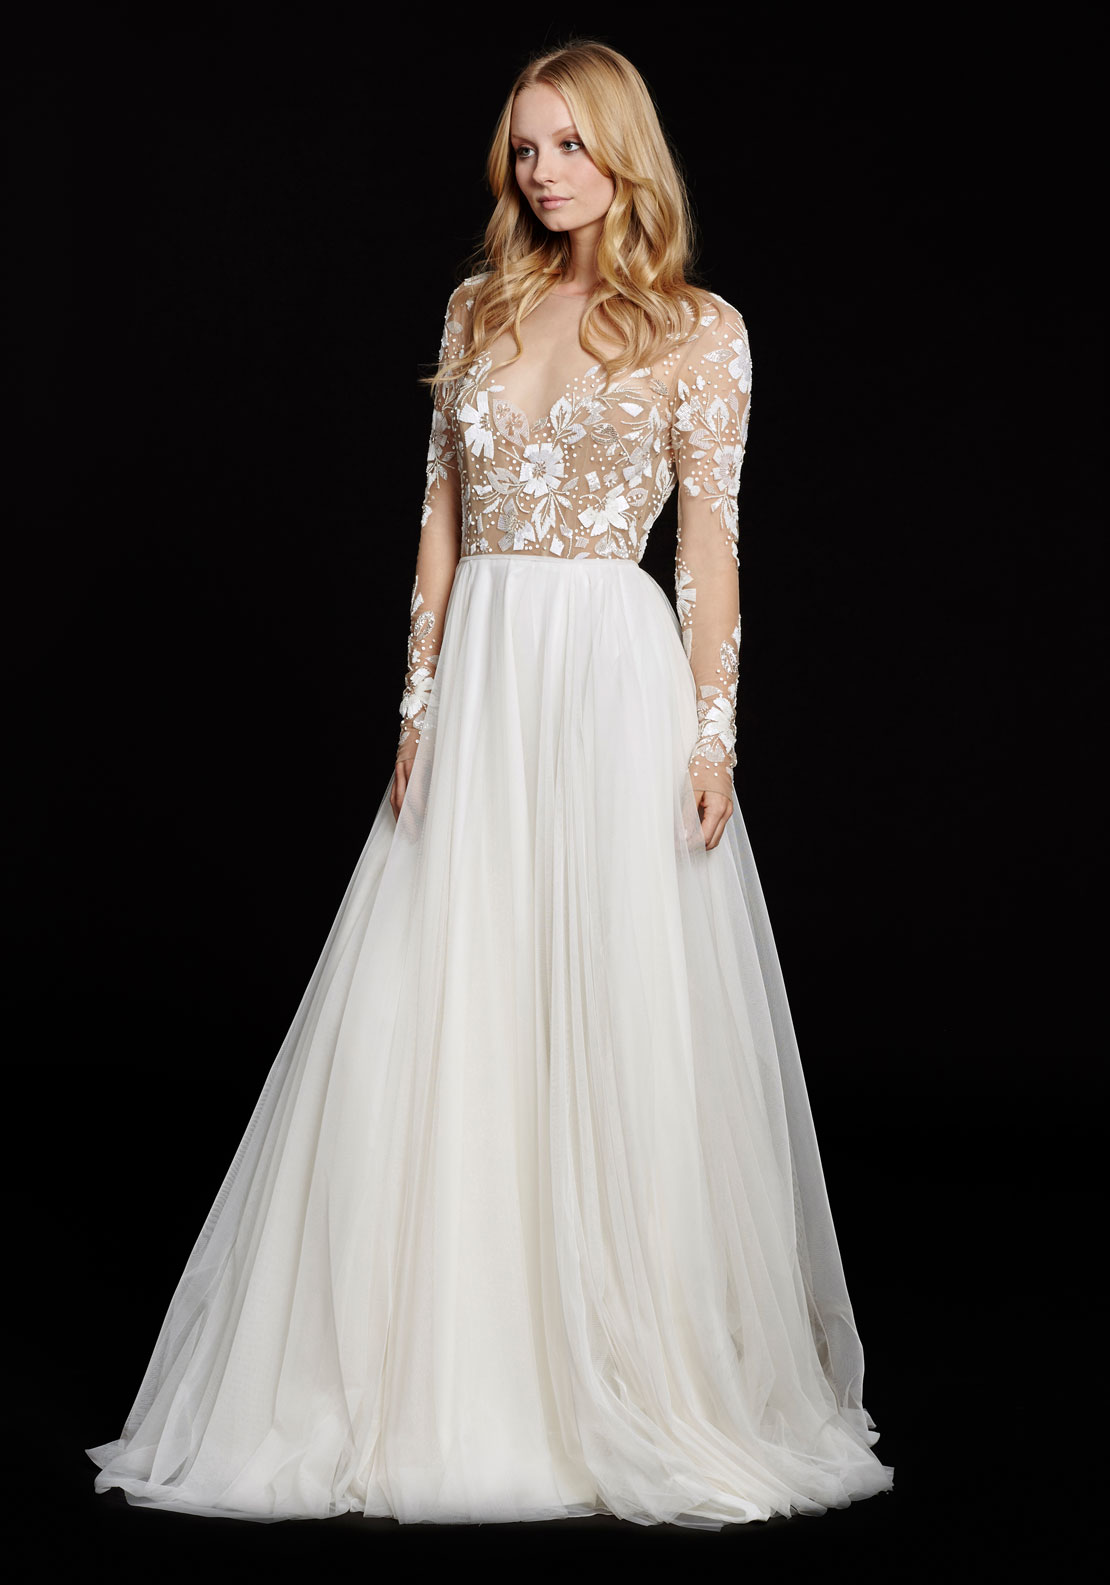 HAYLEY PAIGE BRIDAL US SIZES 10S RWW